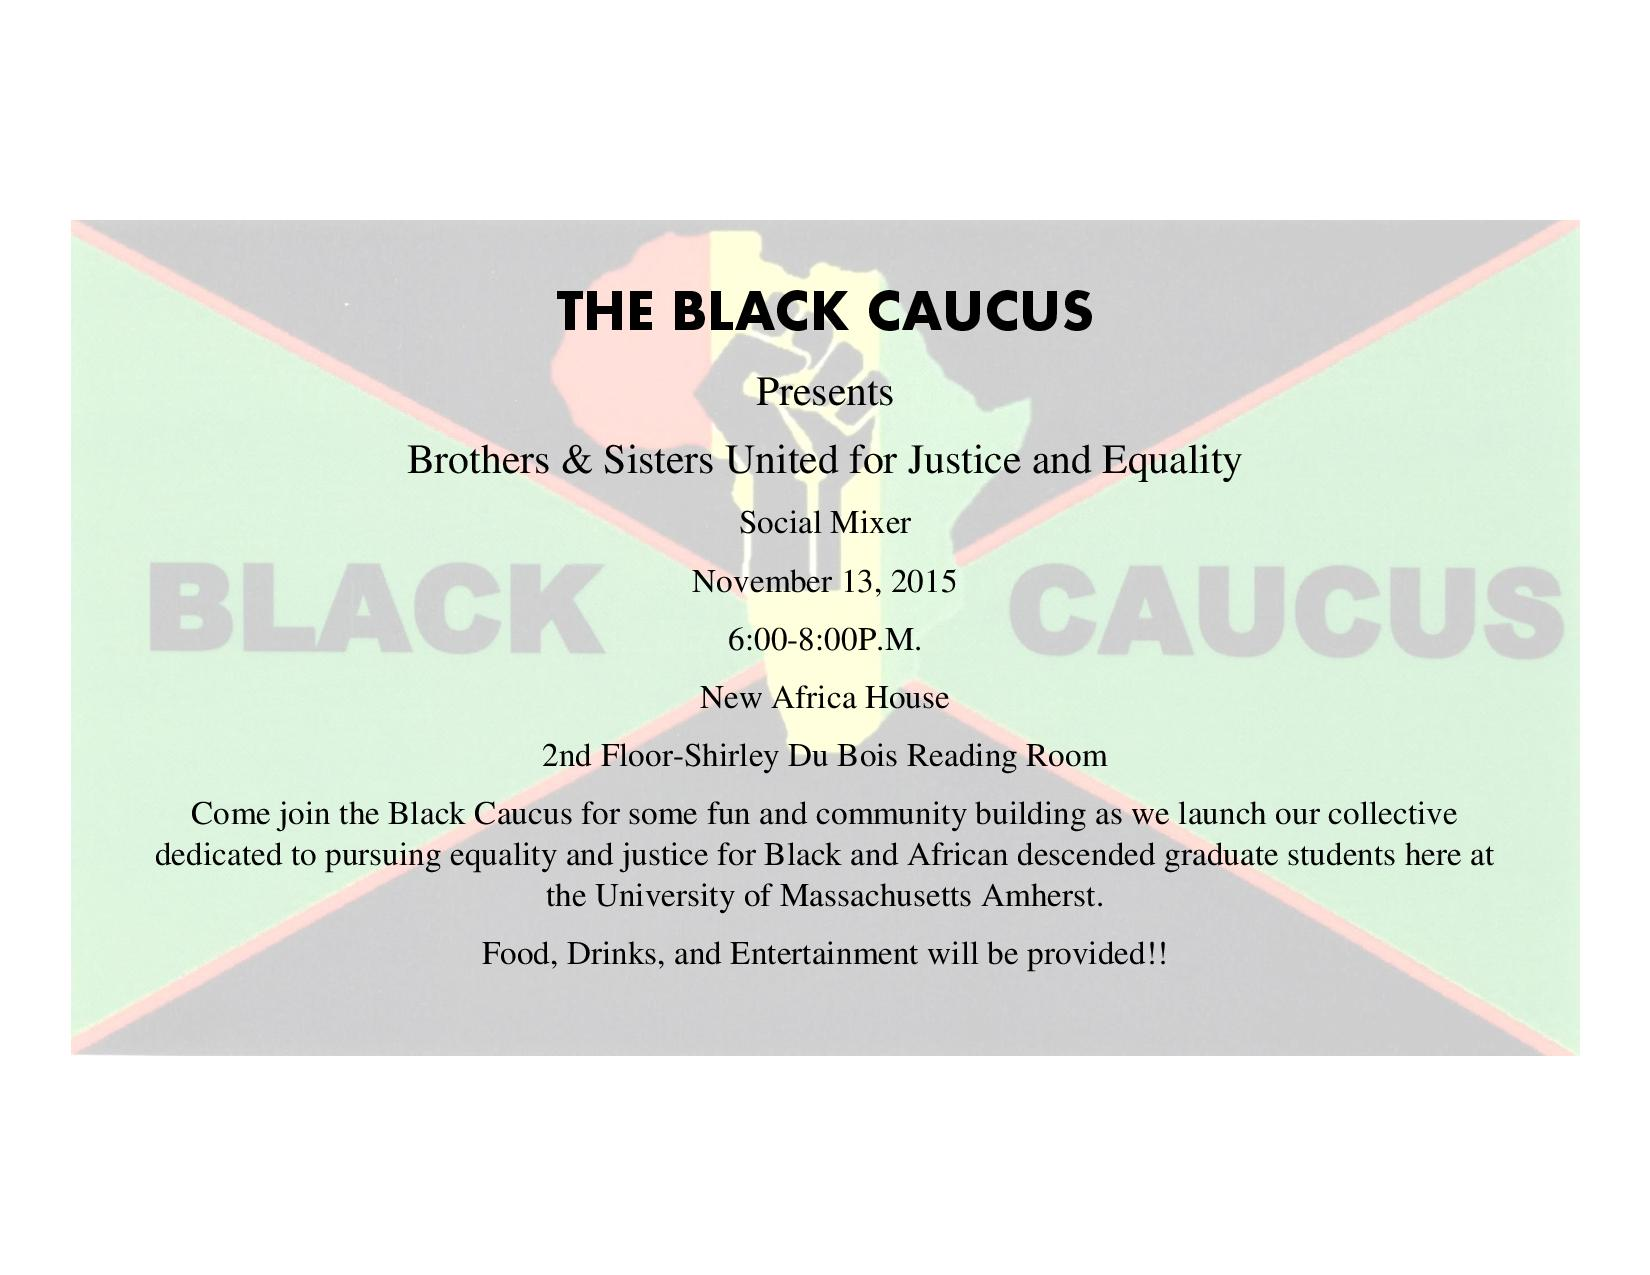 GEO Black Caucus Social Mixer on November 13